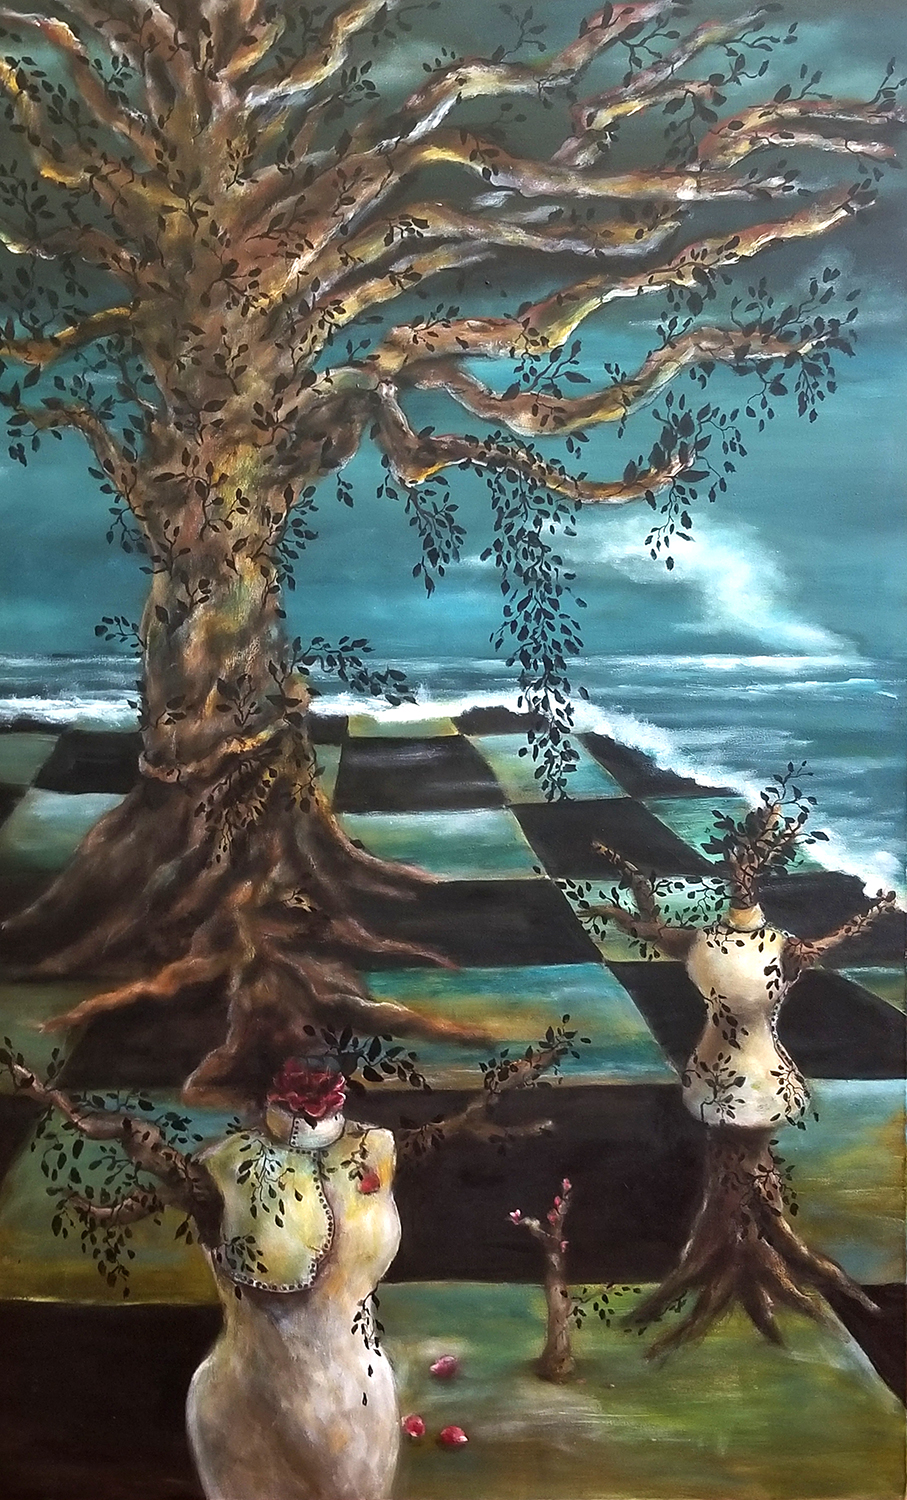 A PLACE OF HER OWN  2 acrylic on canvas 48 x 24